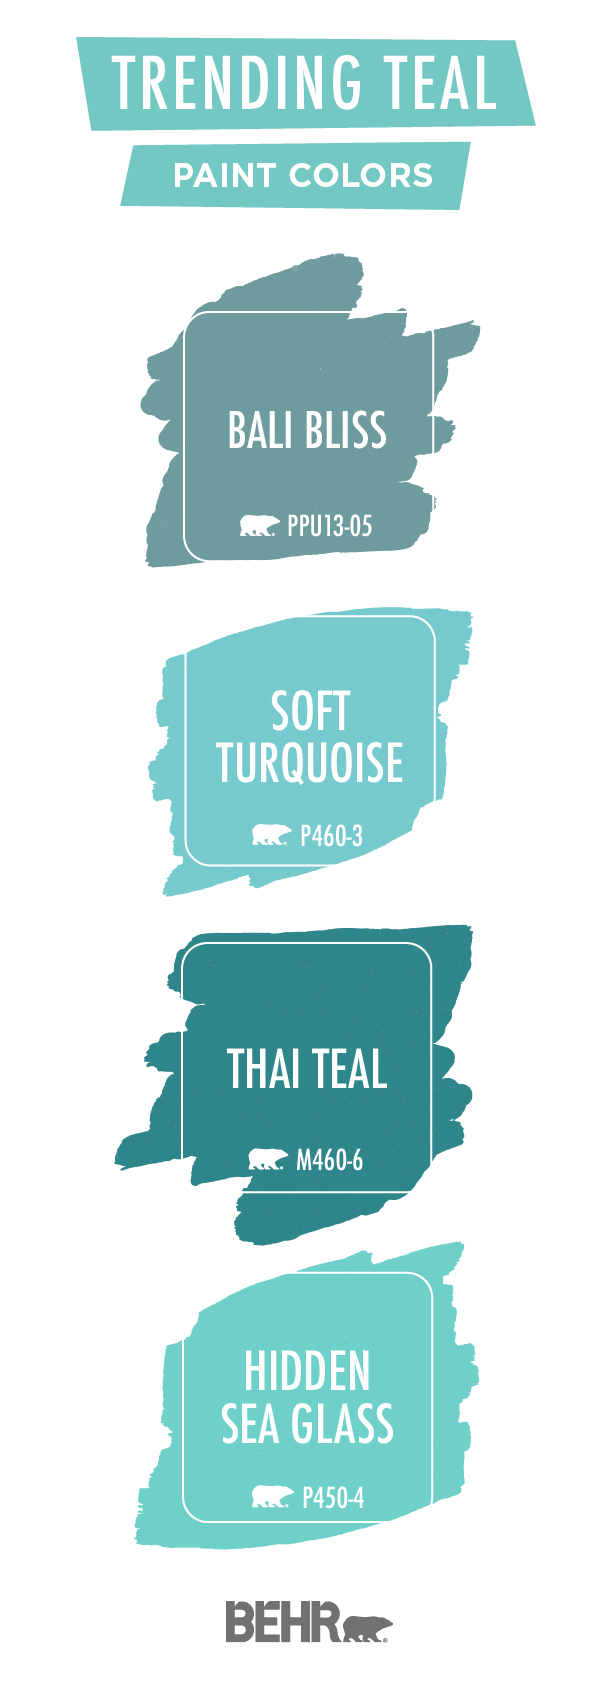 Update your interior design style with these trending teal Behr Paint colors. Bali Bliss, Soft Turquoise, Thai Teal, and Hidden Sea Glass can add a pop of bright blue color to your home. We love pairing these shades with white, gray, cream, and greige color palettes to create a beach-inspired look. Click below for chic home decor ideas.